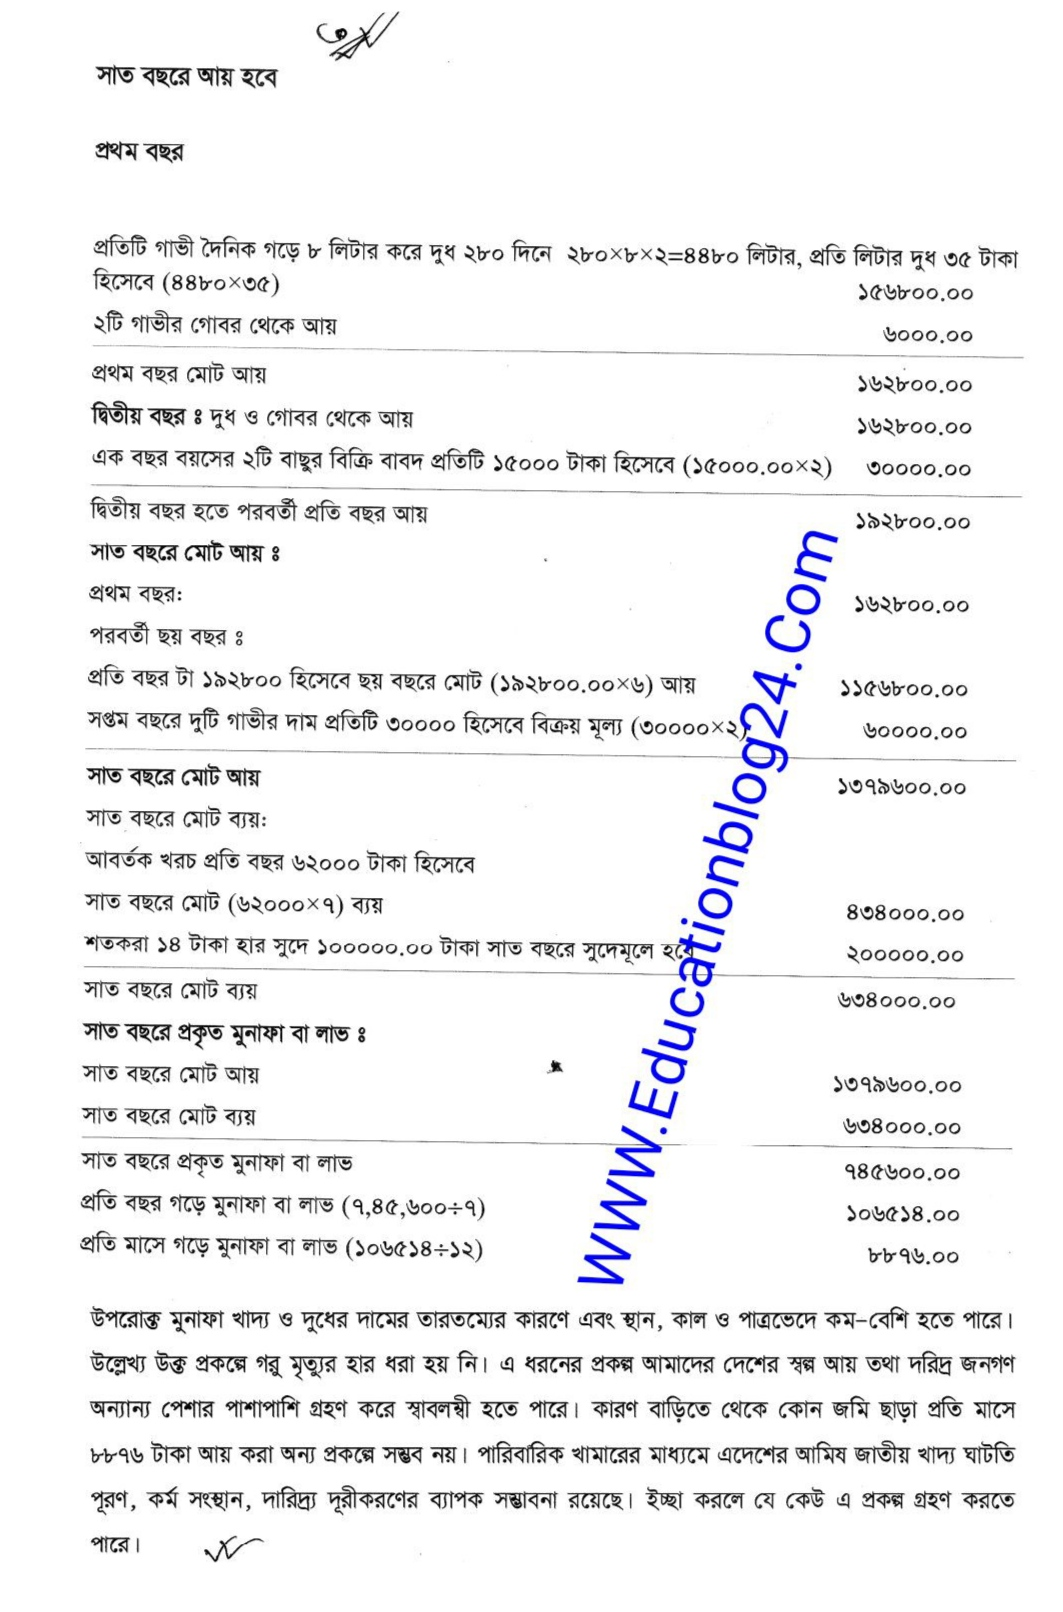 SSC / Dakhil (Vocational) Livestock Rearing and Farming Assignment Answer 2021 6